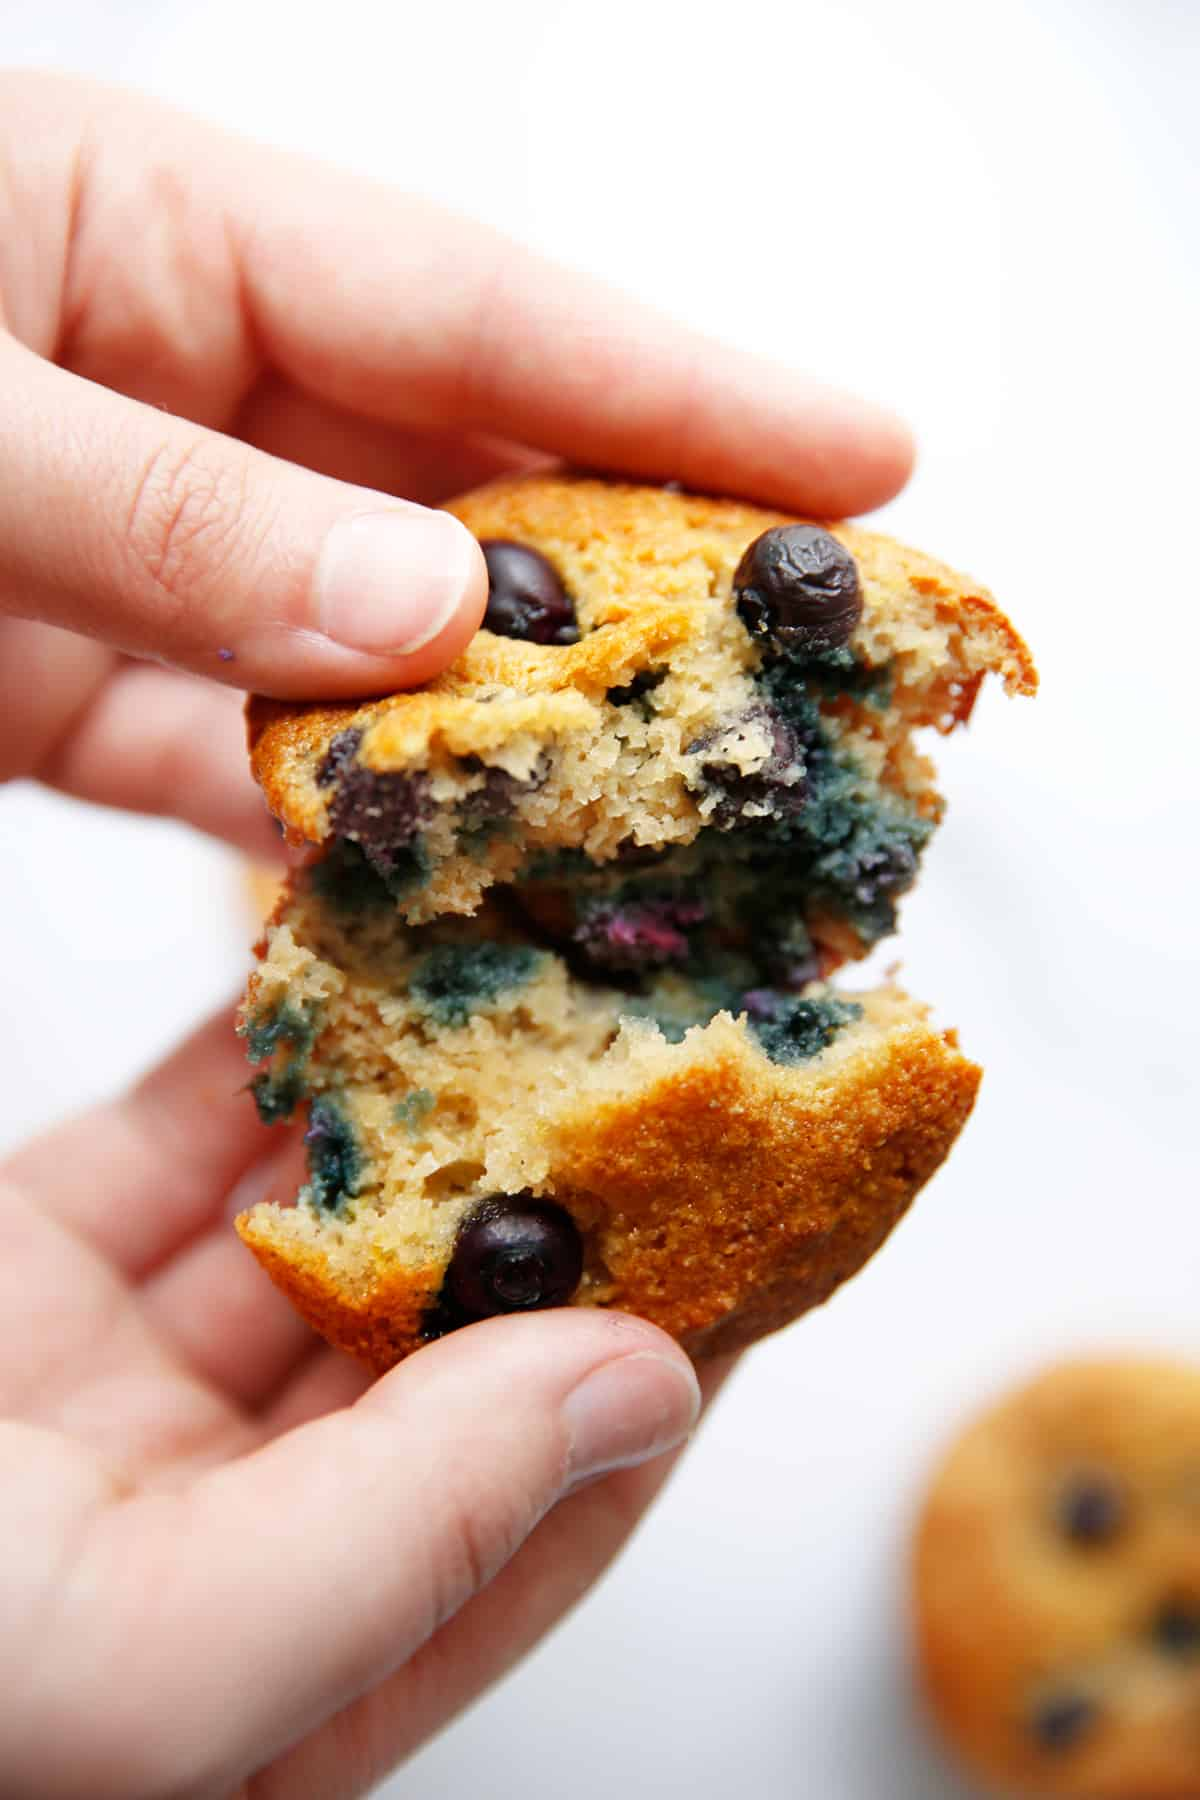 A paleo blueberry muffin ripped in half